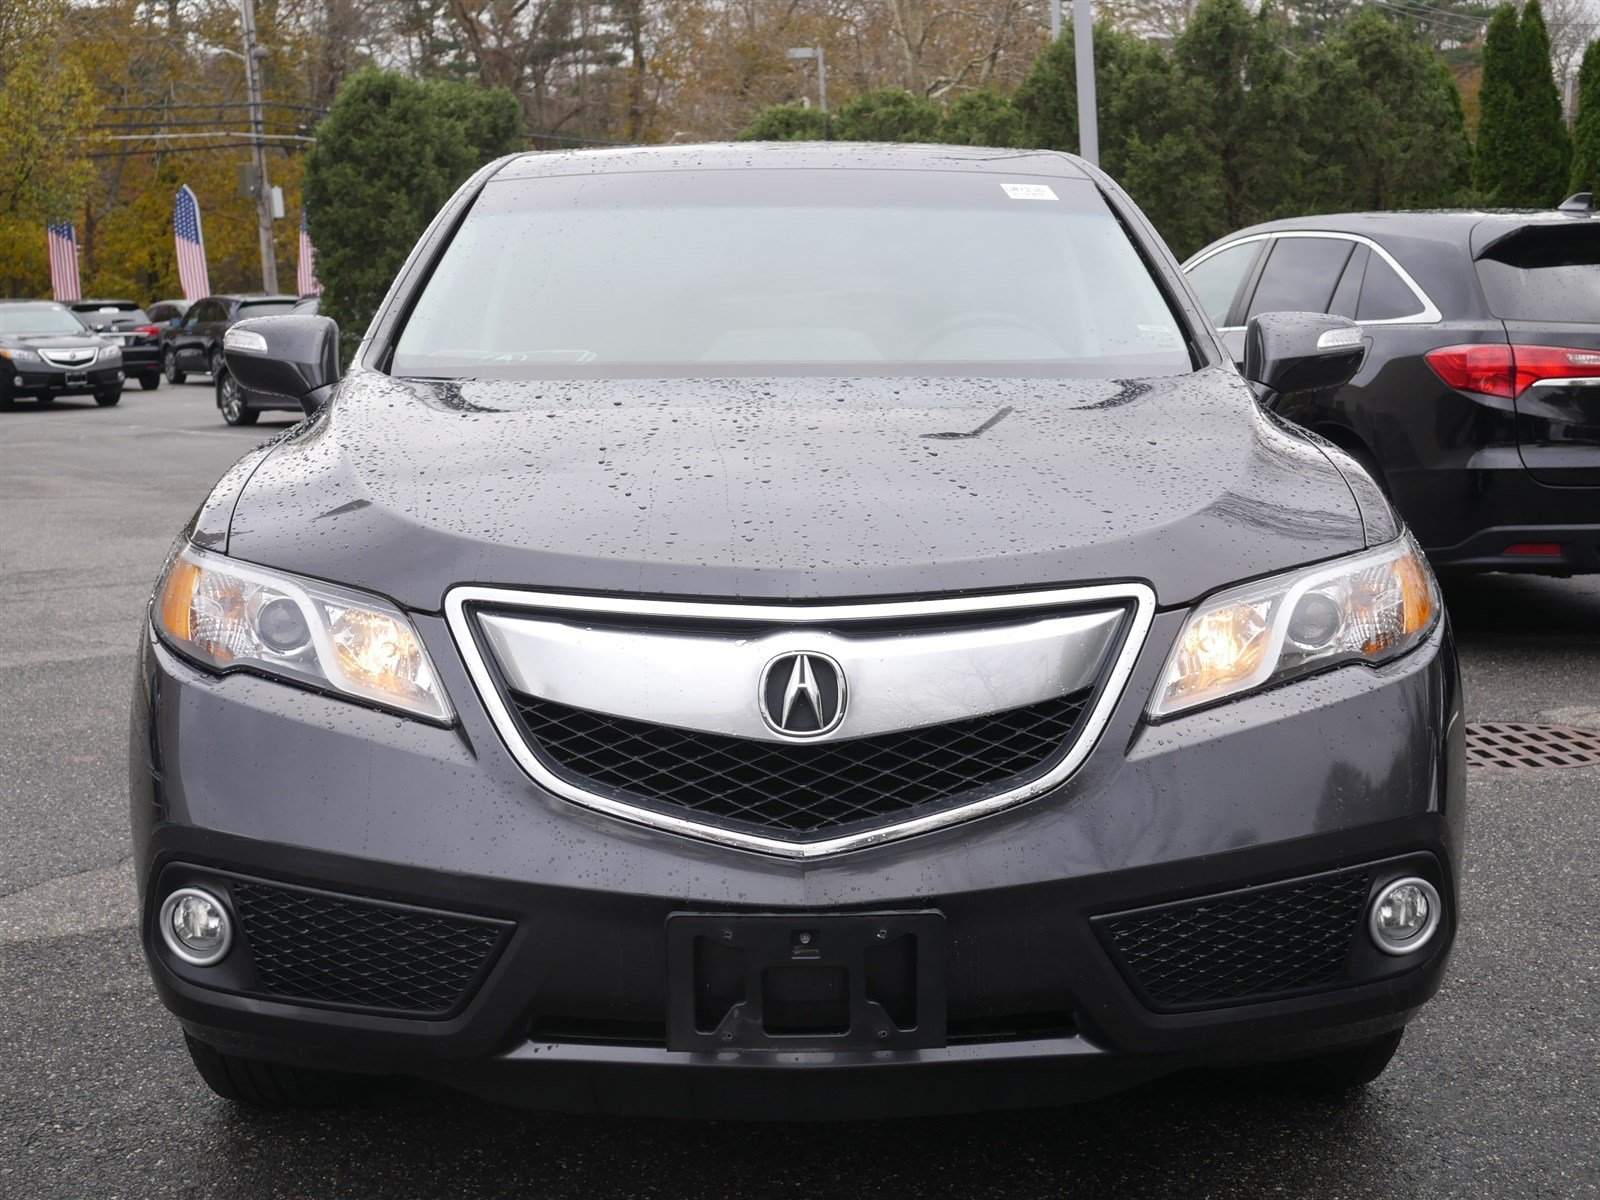 tv motoring base awd en price full the guide specifications car technical acura engine rdx